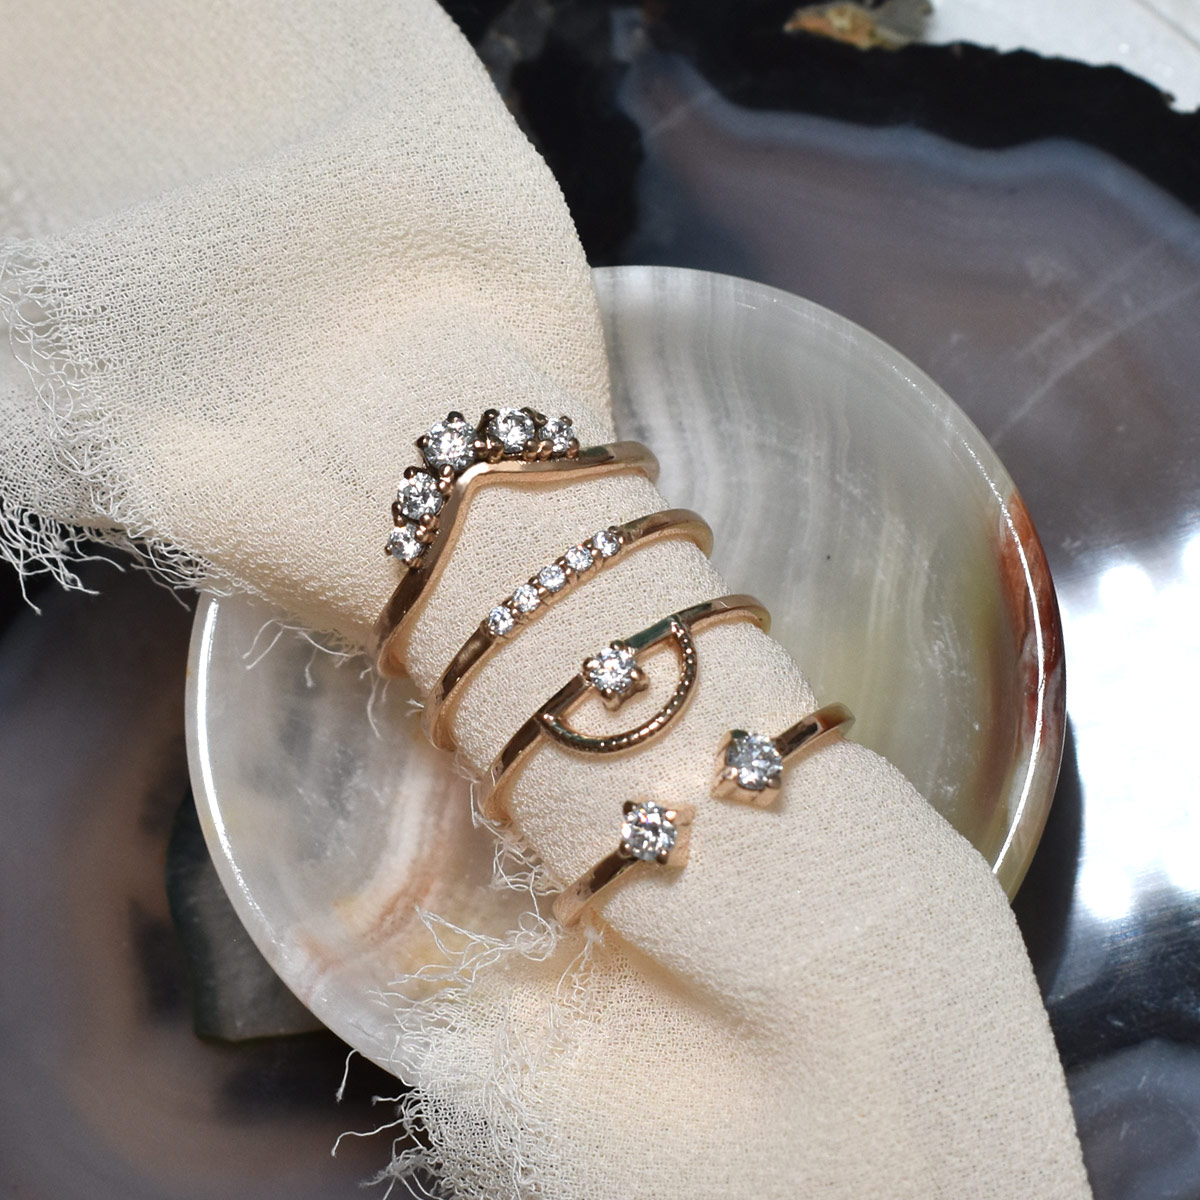 Saint K Stacking Rings in Diamonds and 14k Gold